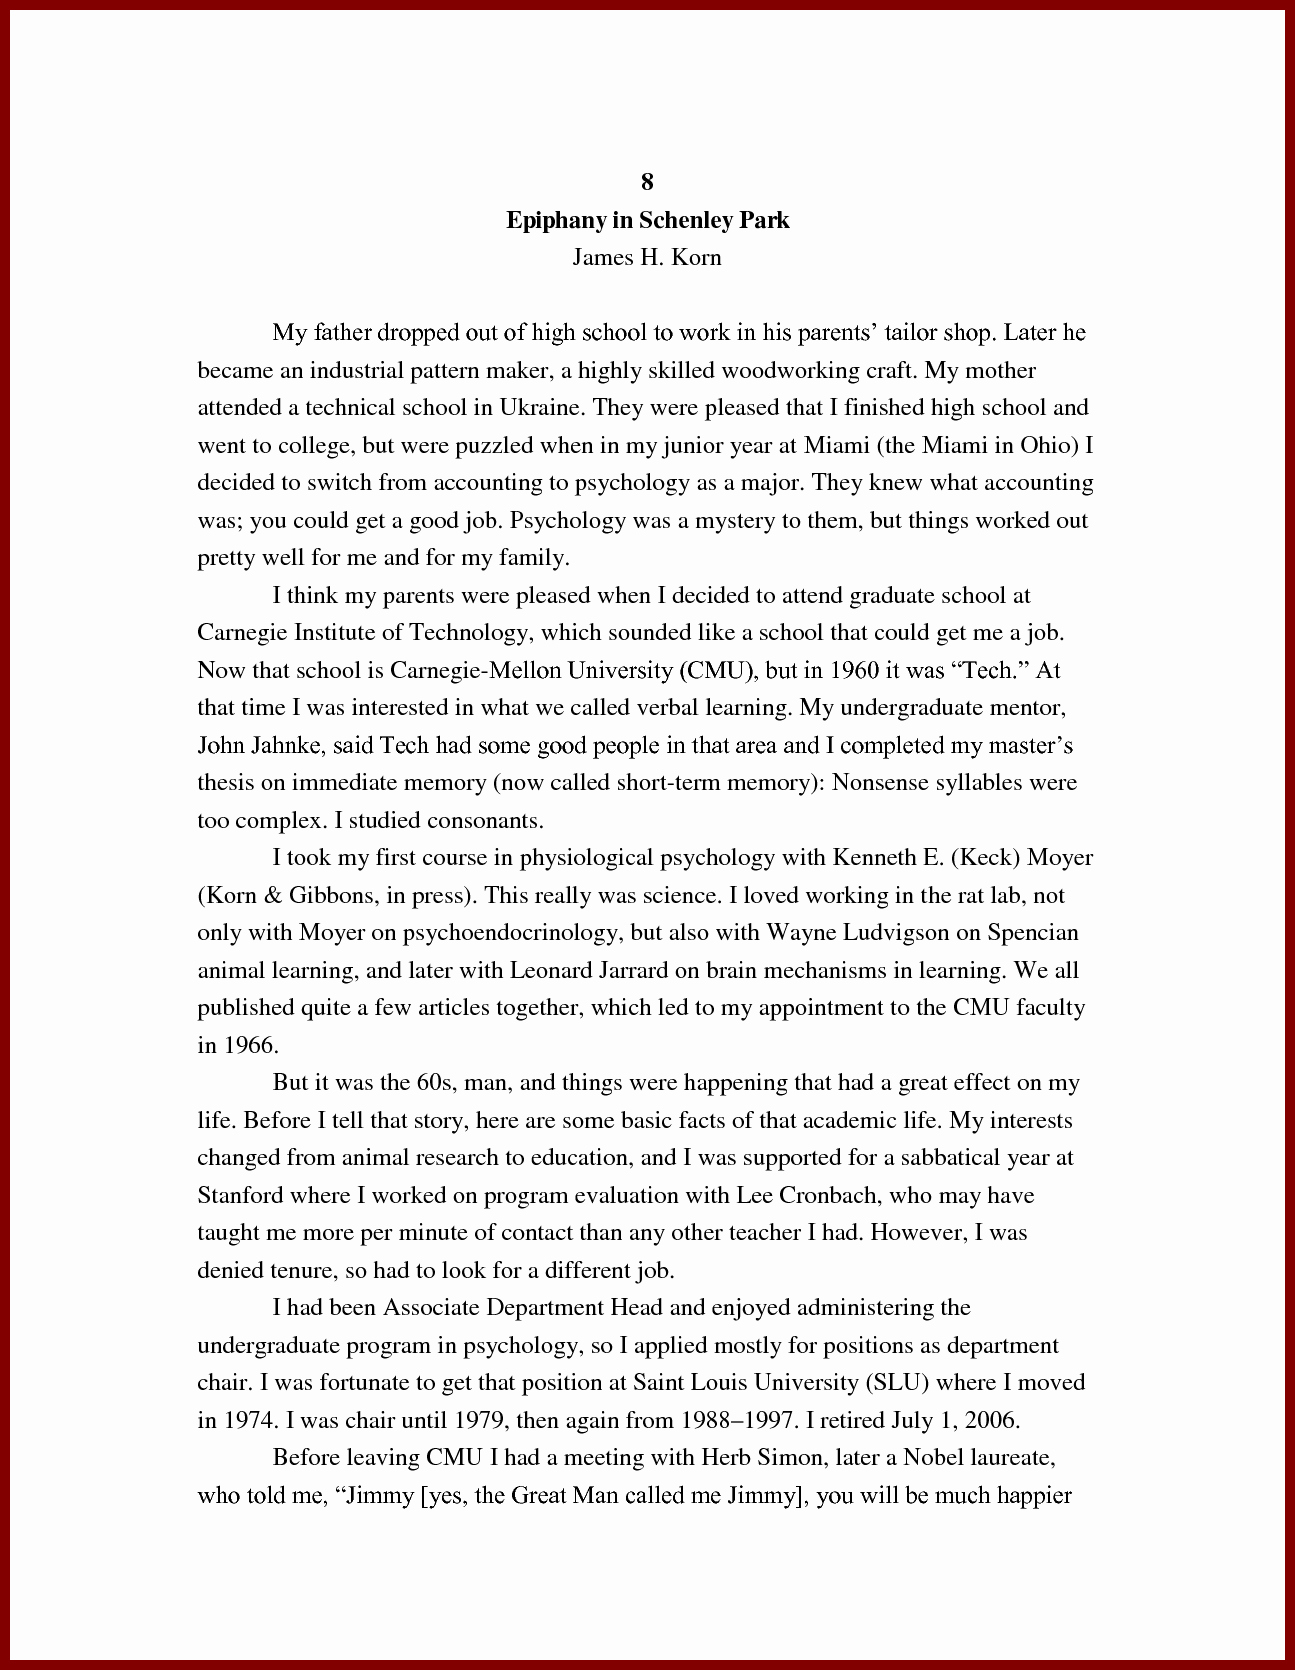 Personal Background Essay Examples Elegant 15 Author Biography Example